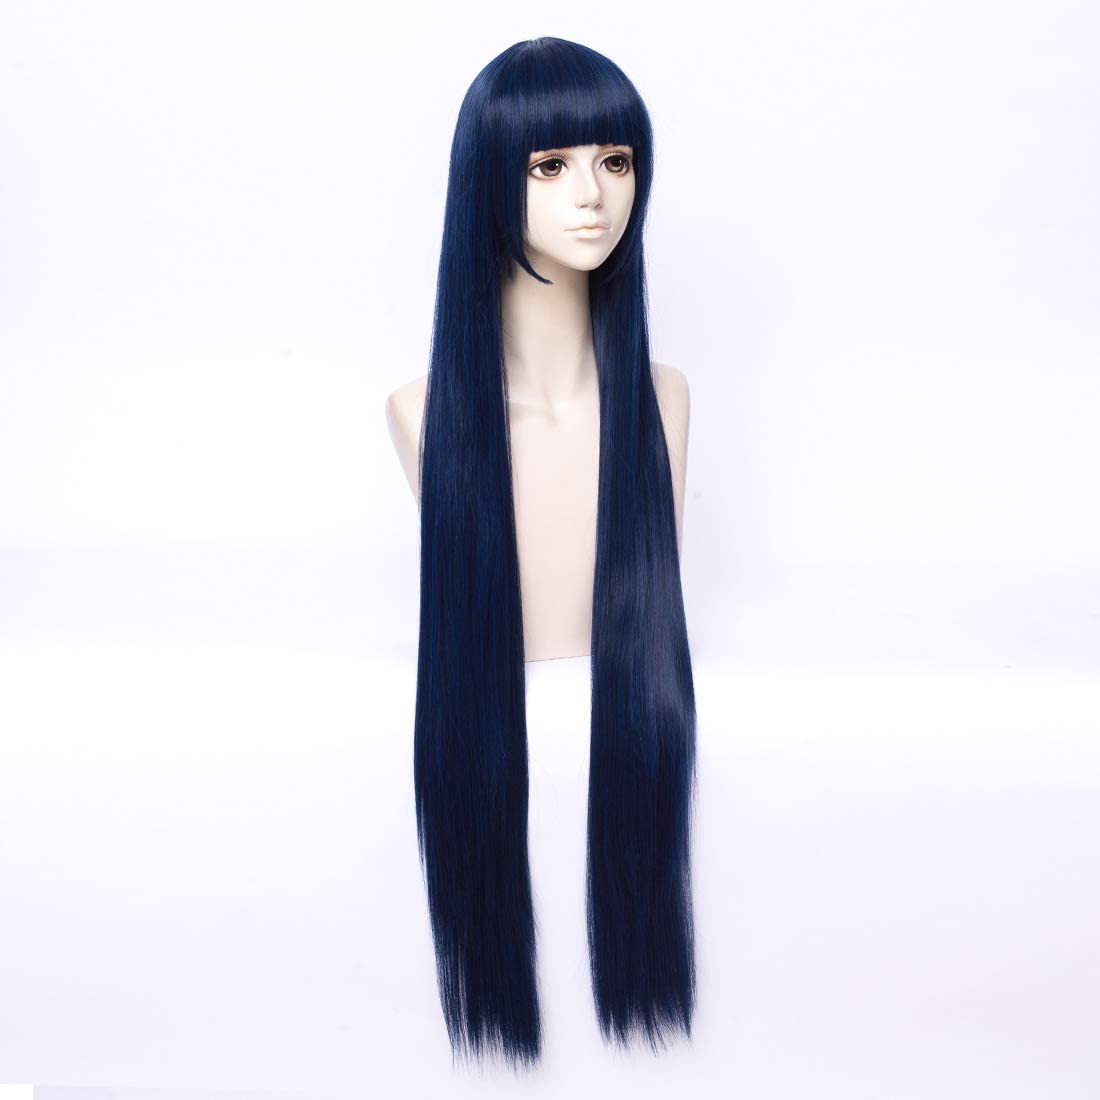 COSPLAZA Cosplay Costume Wigs Perruque Naruto Shippuden Hinata Hyuga longueue beau bleue Party Cheveux